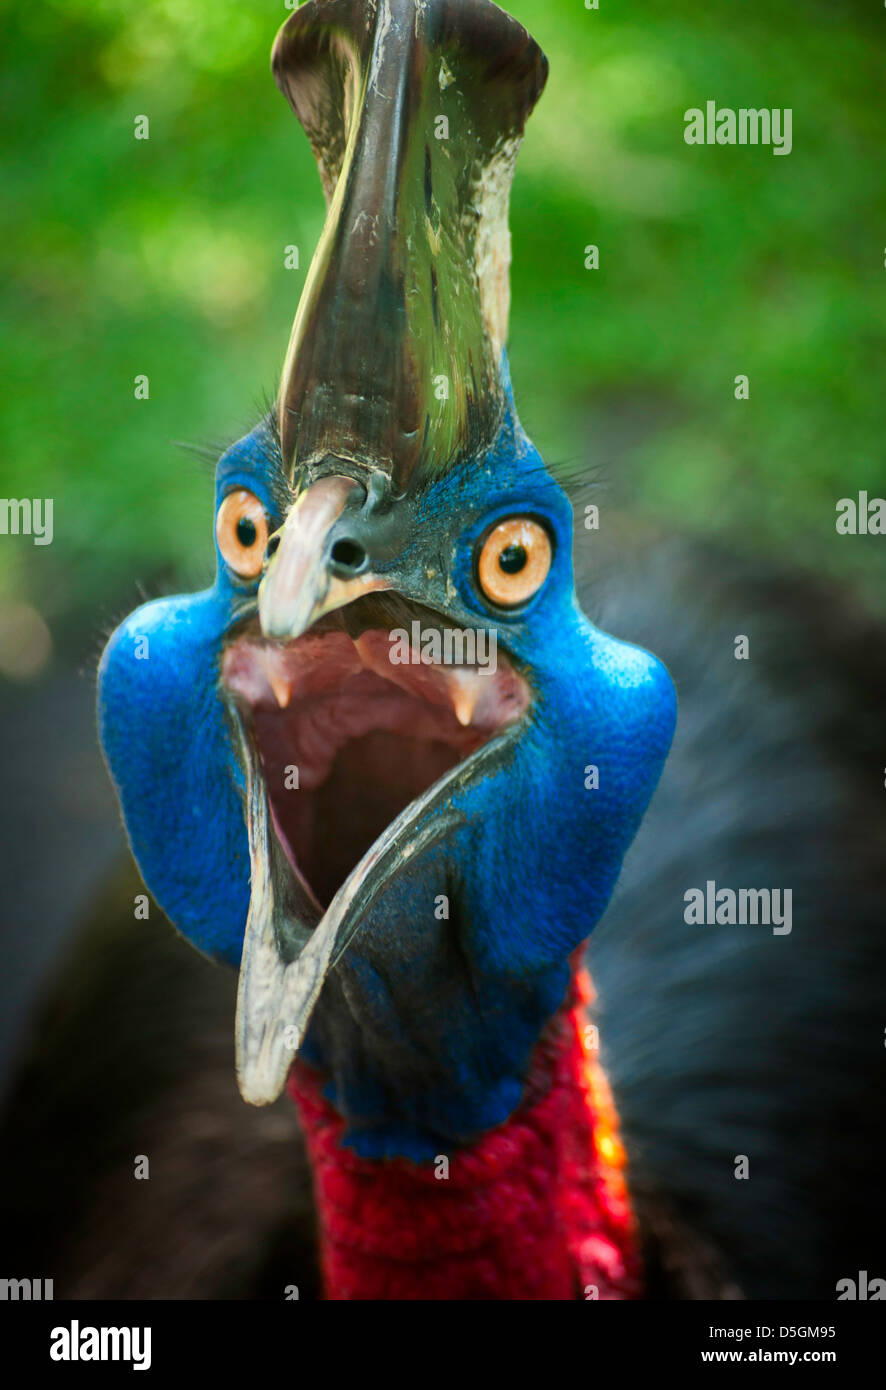 Images of Australian cassowary look into the camera angry face. - Stock Image